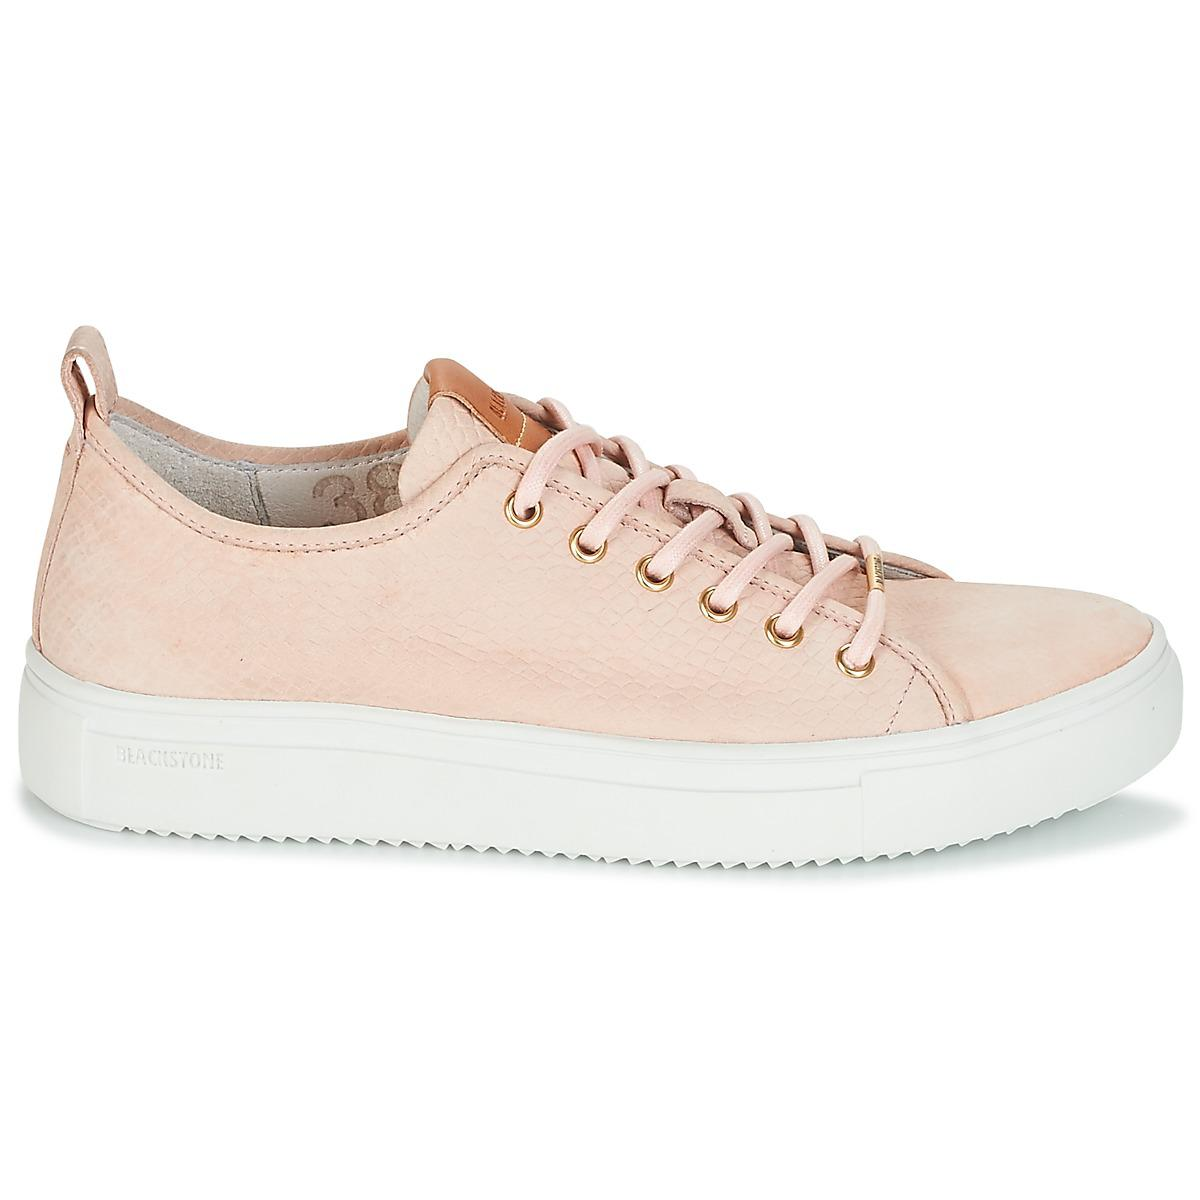 newest 924c9 b16ae blackstone-pink-Pl90-Womens-Shoes-trainers-In-Pink.jpeg